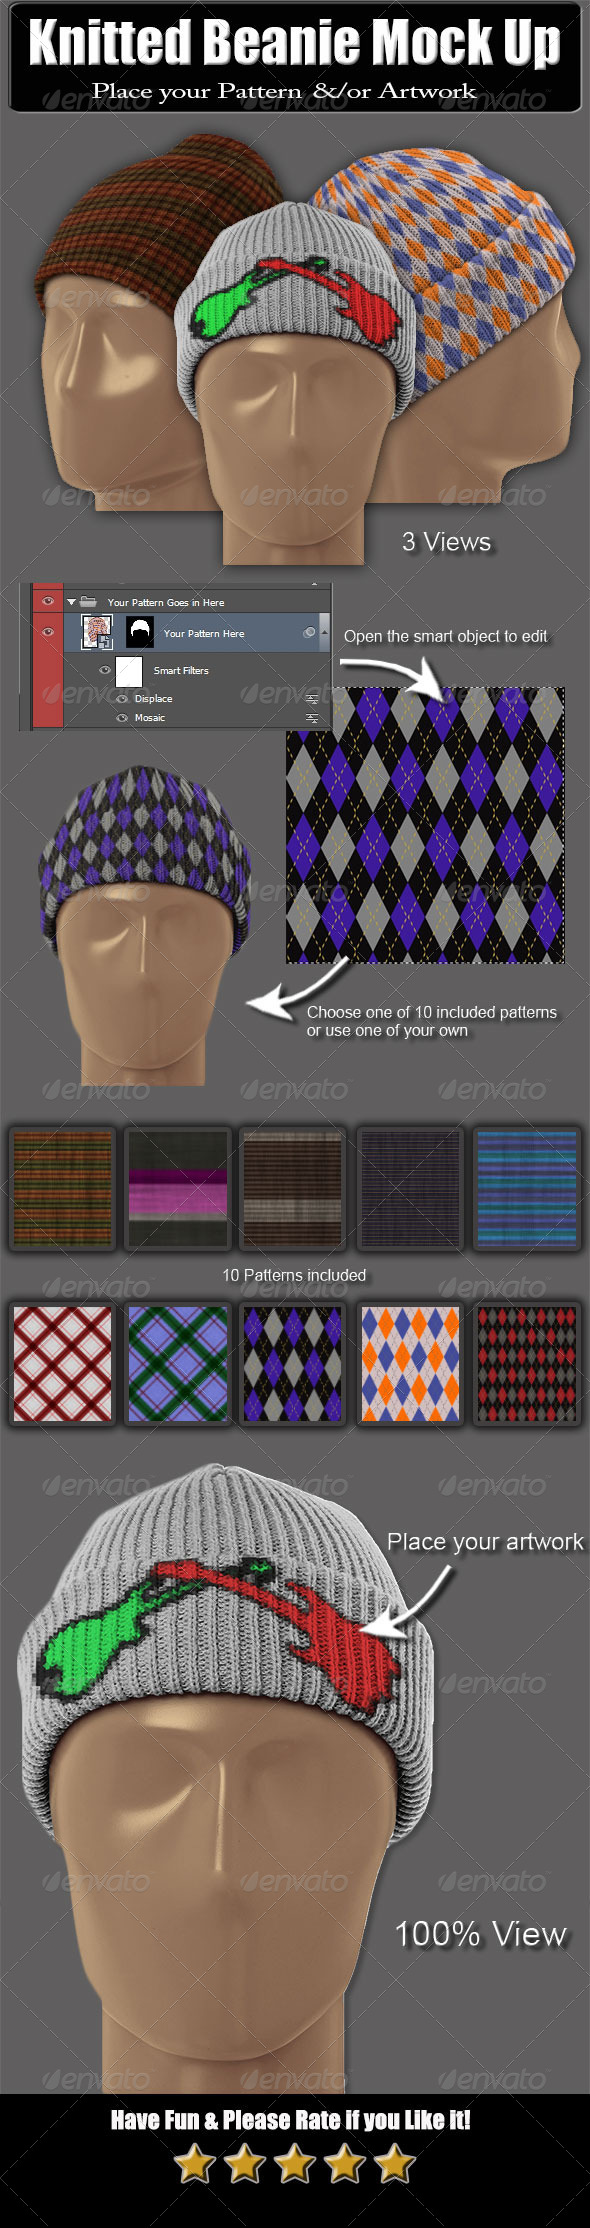 GraphicRiver Knitted Beanie Mock Up 6088965